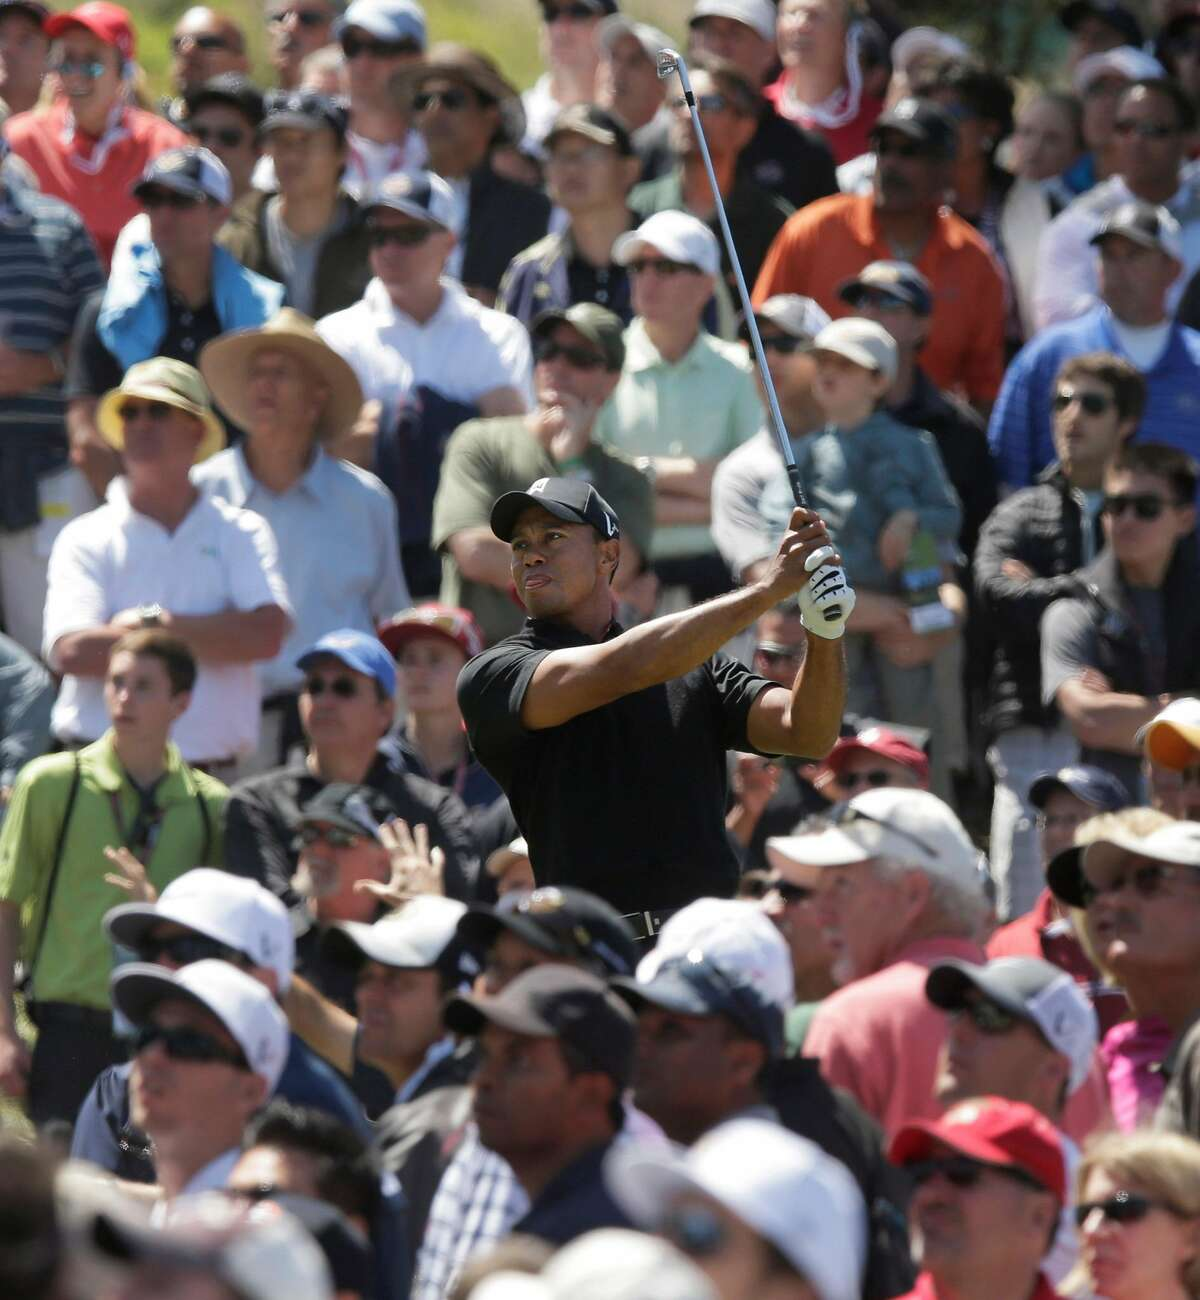 Tiger Woods hits a drive on the sixth hole during the second round of the U.S. Open Championship golf tournament Friday, June 15, 2012, at The Olympic Club in San Francisco. (AP Photo/Charlie Riedel)